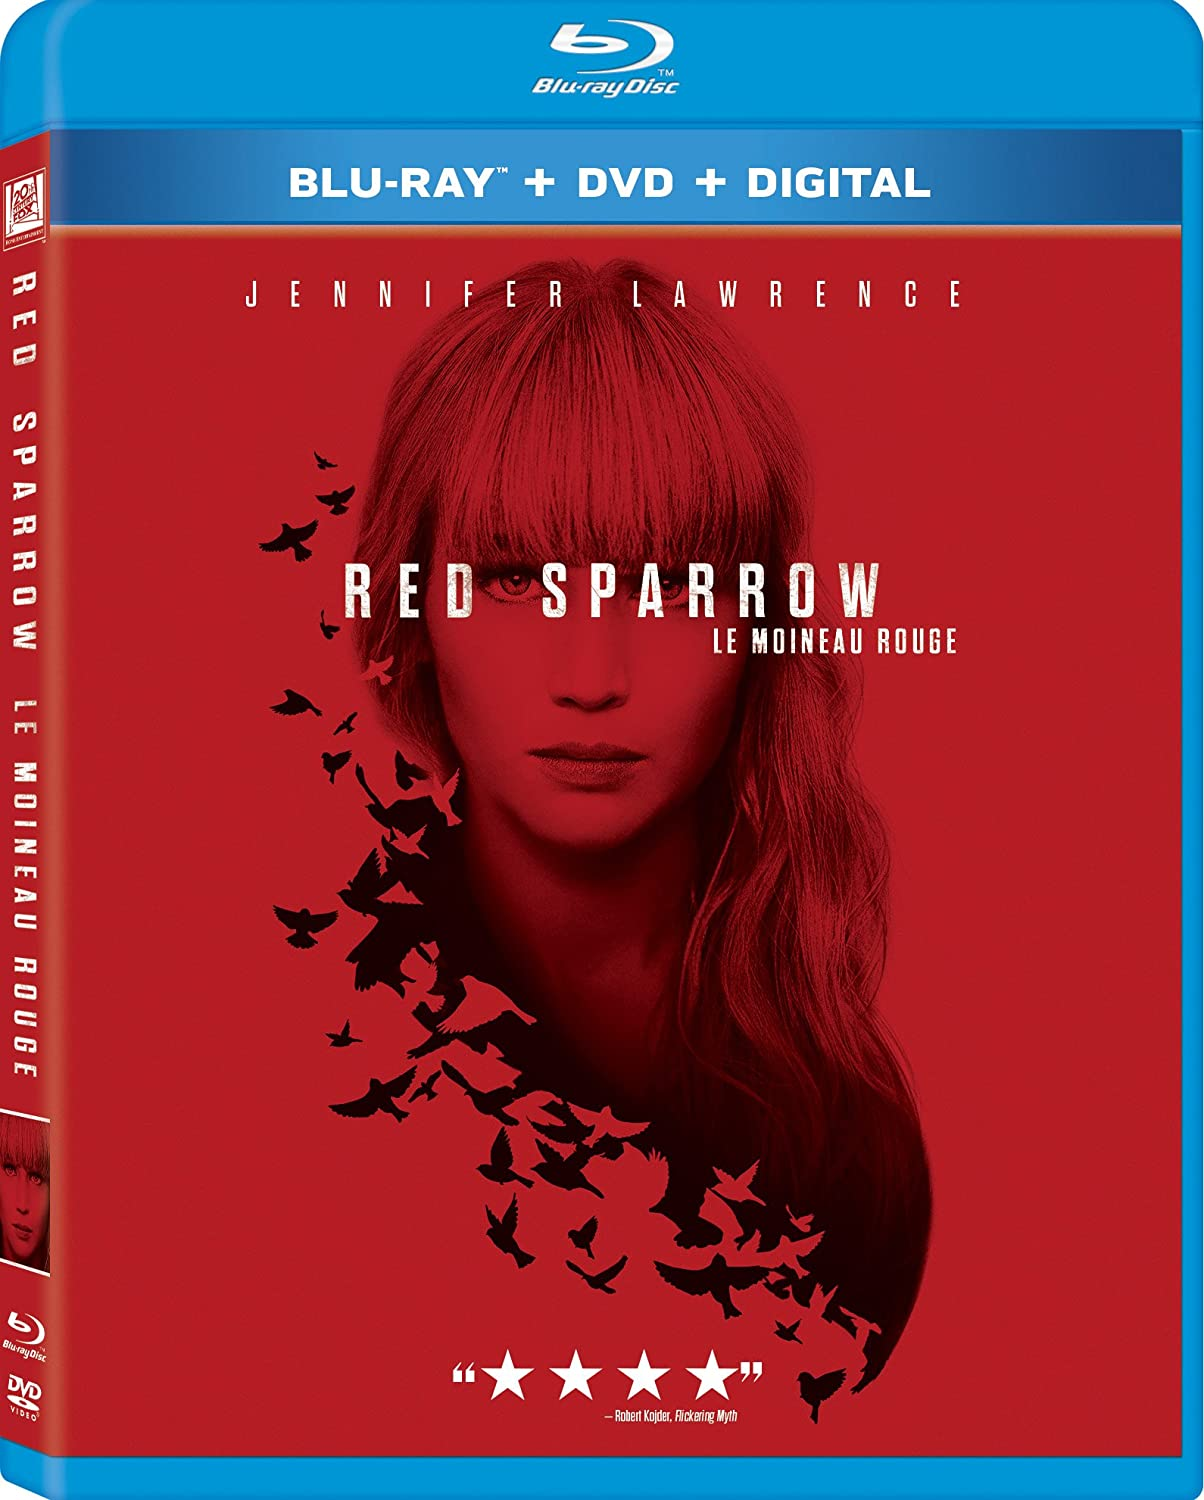 Red Sparrow [Blu-ray] (Bilingual): Amazon.ca: DVD